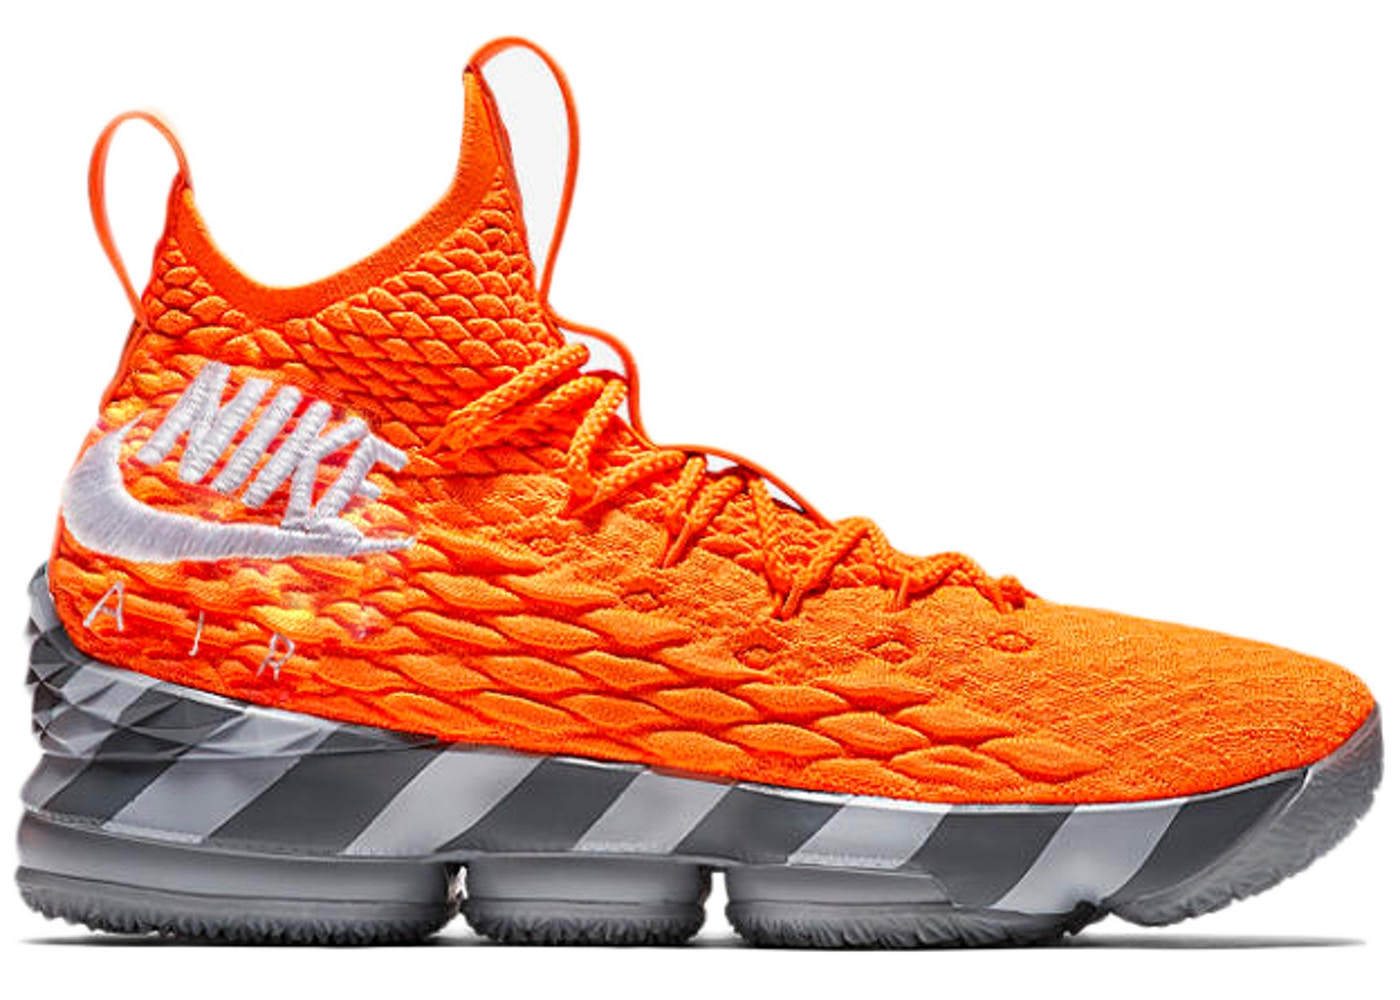 LeBron 15 Orange Box - AR5125-800 ffdc008aee4c